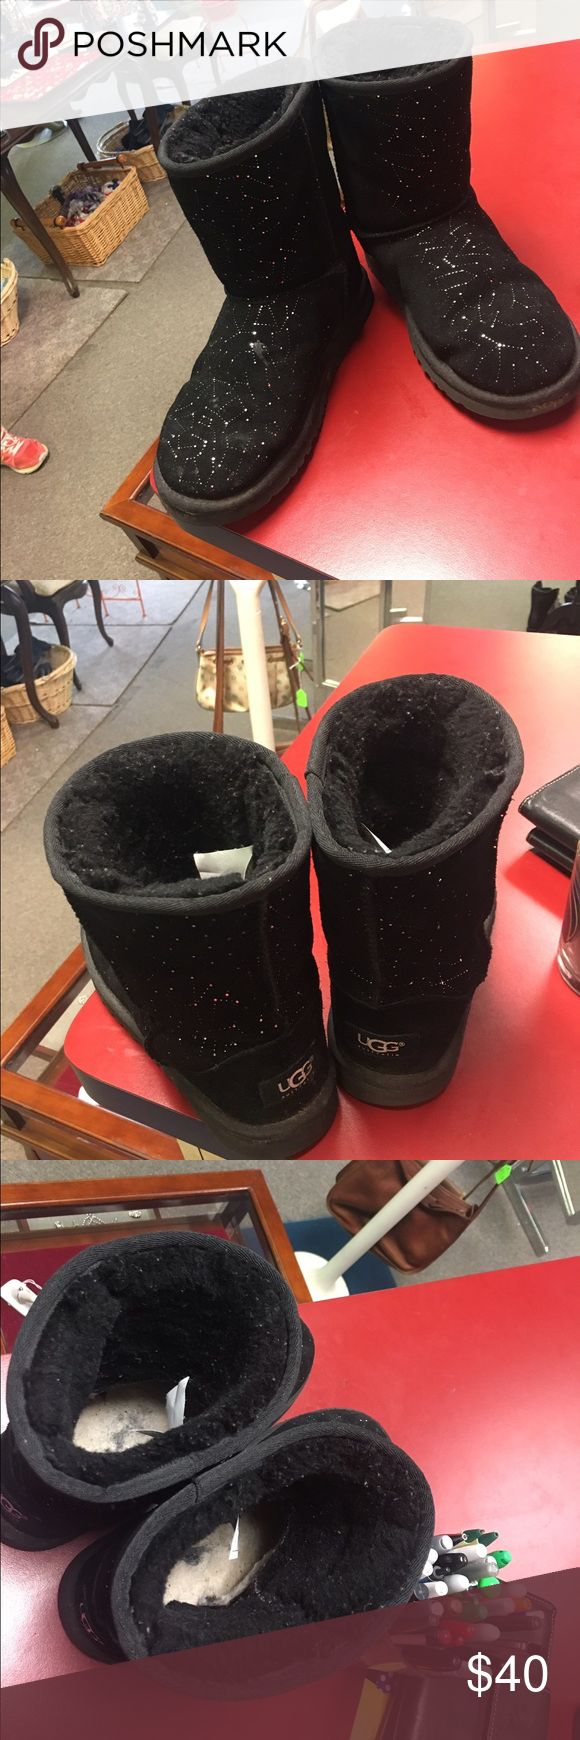 Women's/Girls UGGS boots Size 6/women's size 7/8 Awesome Black w/Silver Ugg boots. Size 6 girls or 7/8 women's UGG Shoes Ankle Boots & Booties